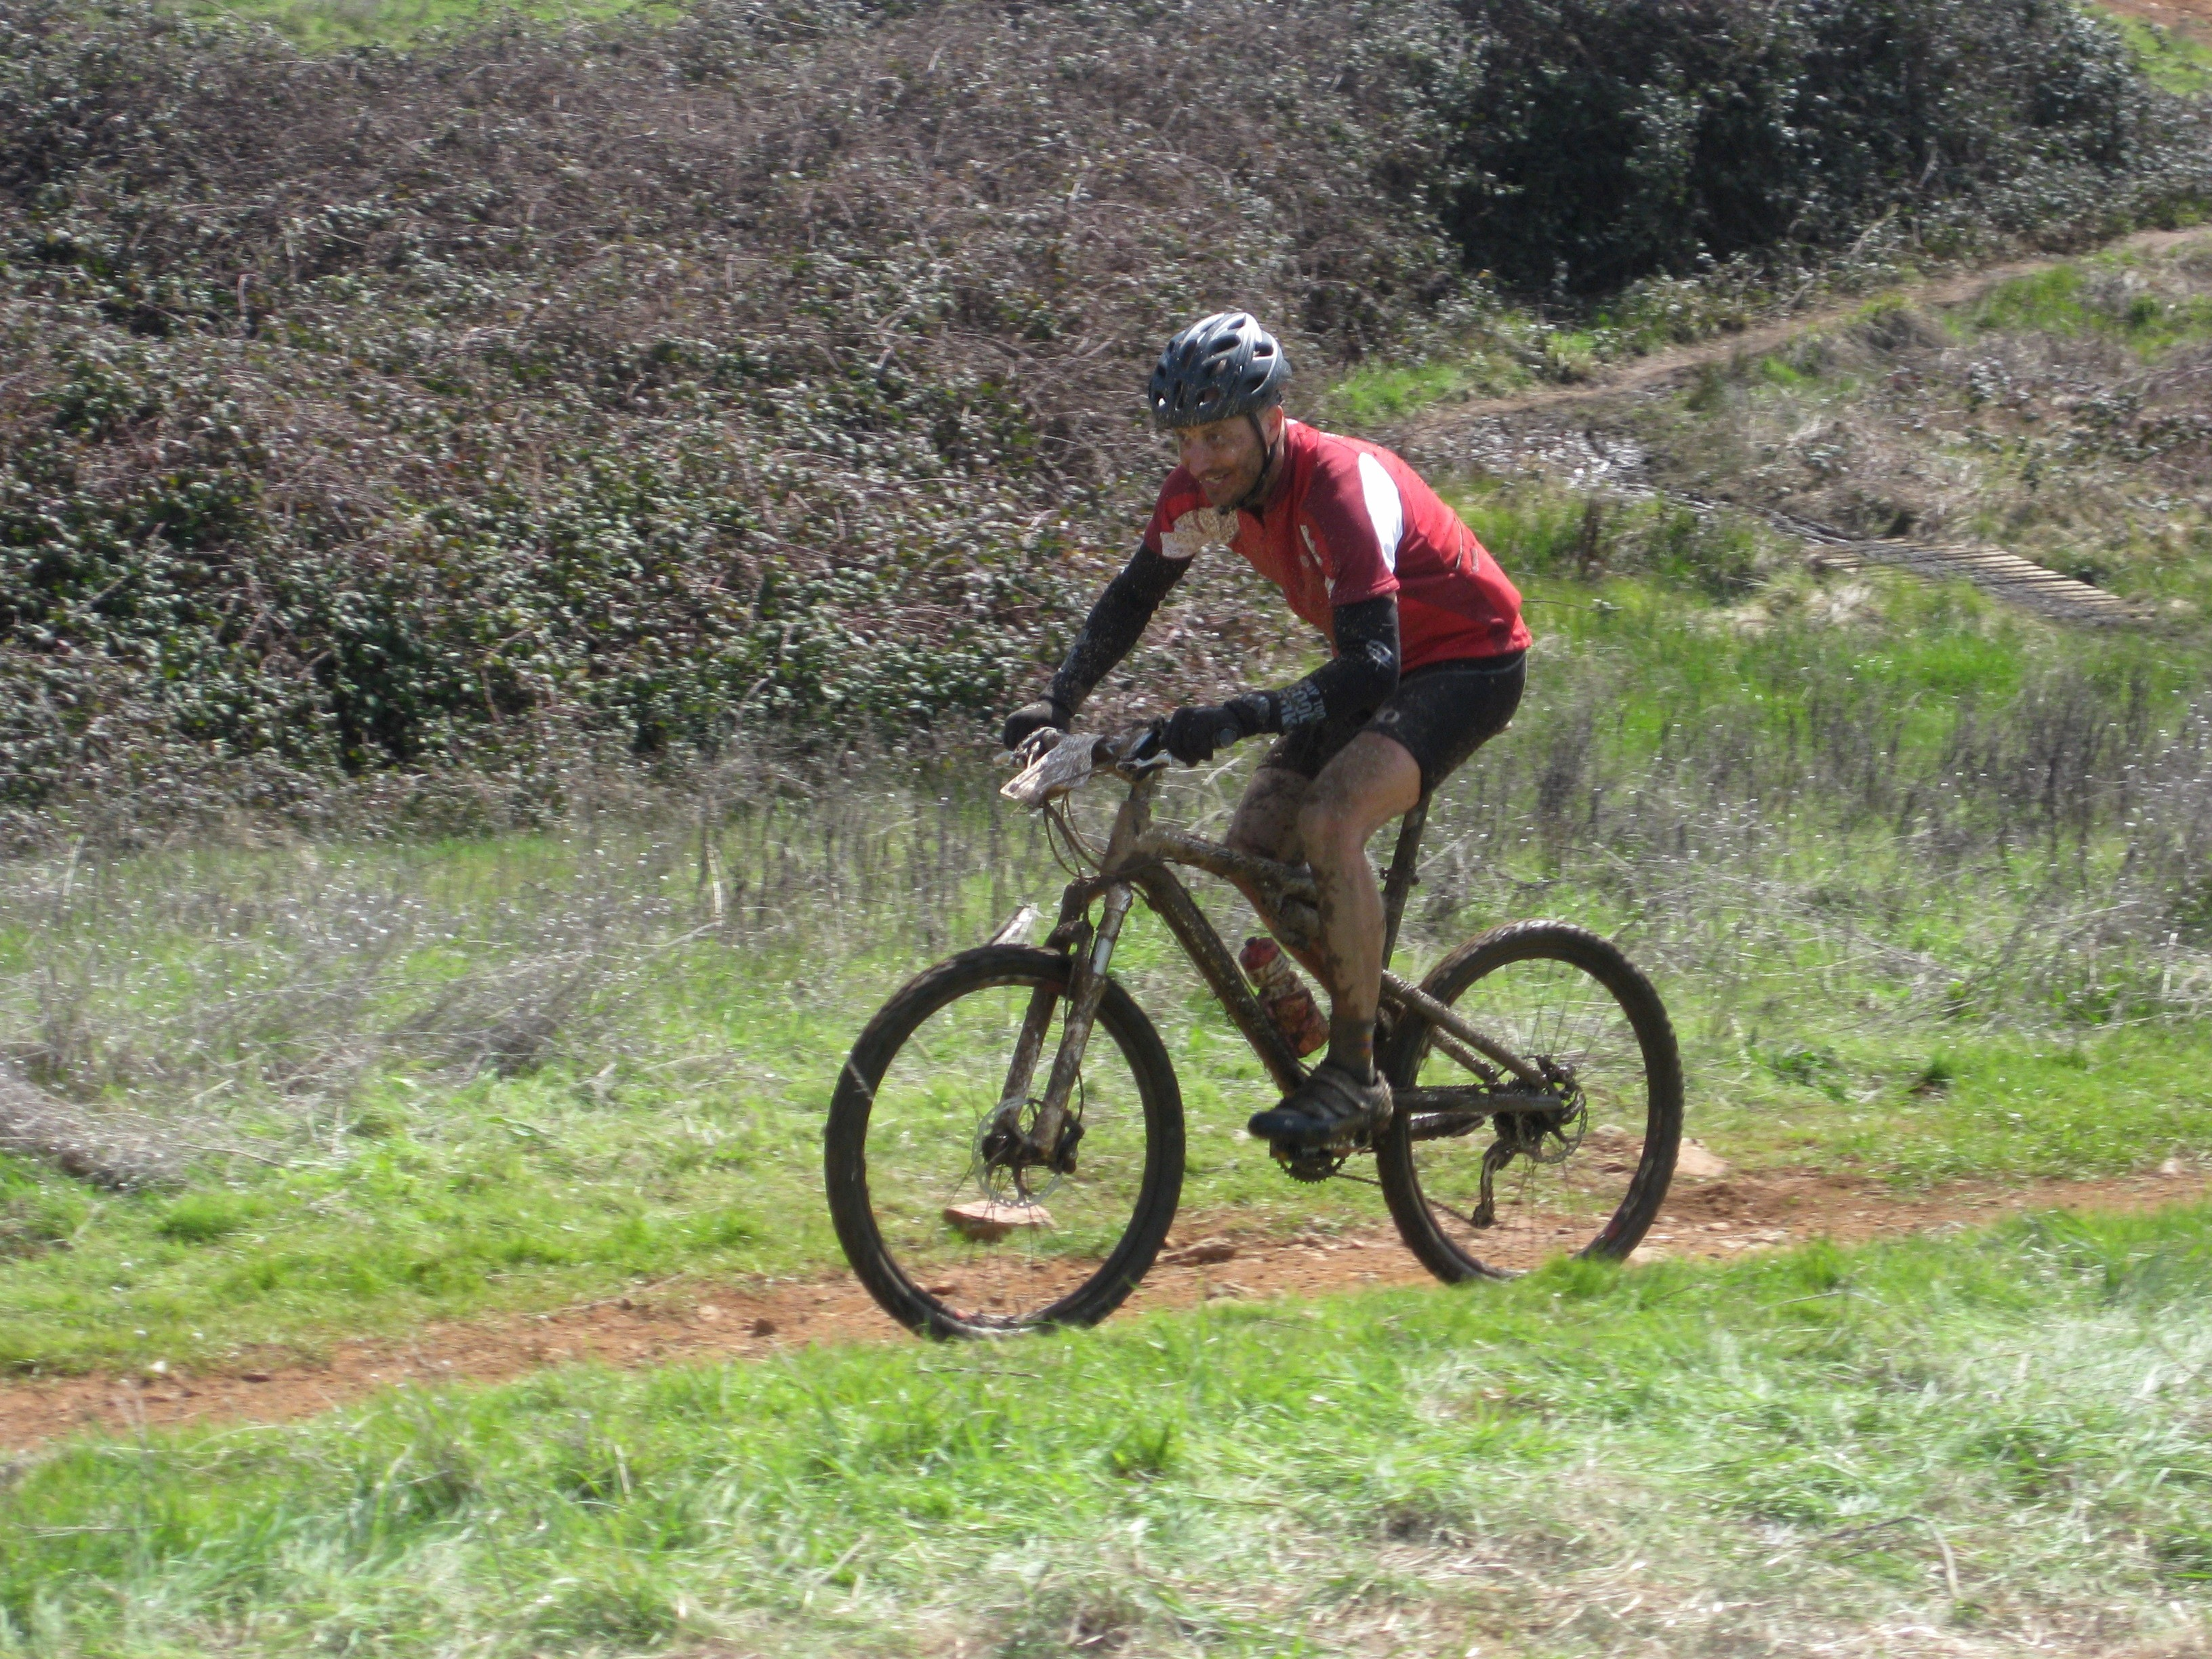 Craig finishing his first and only mtn bike race in March